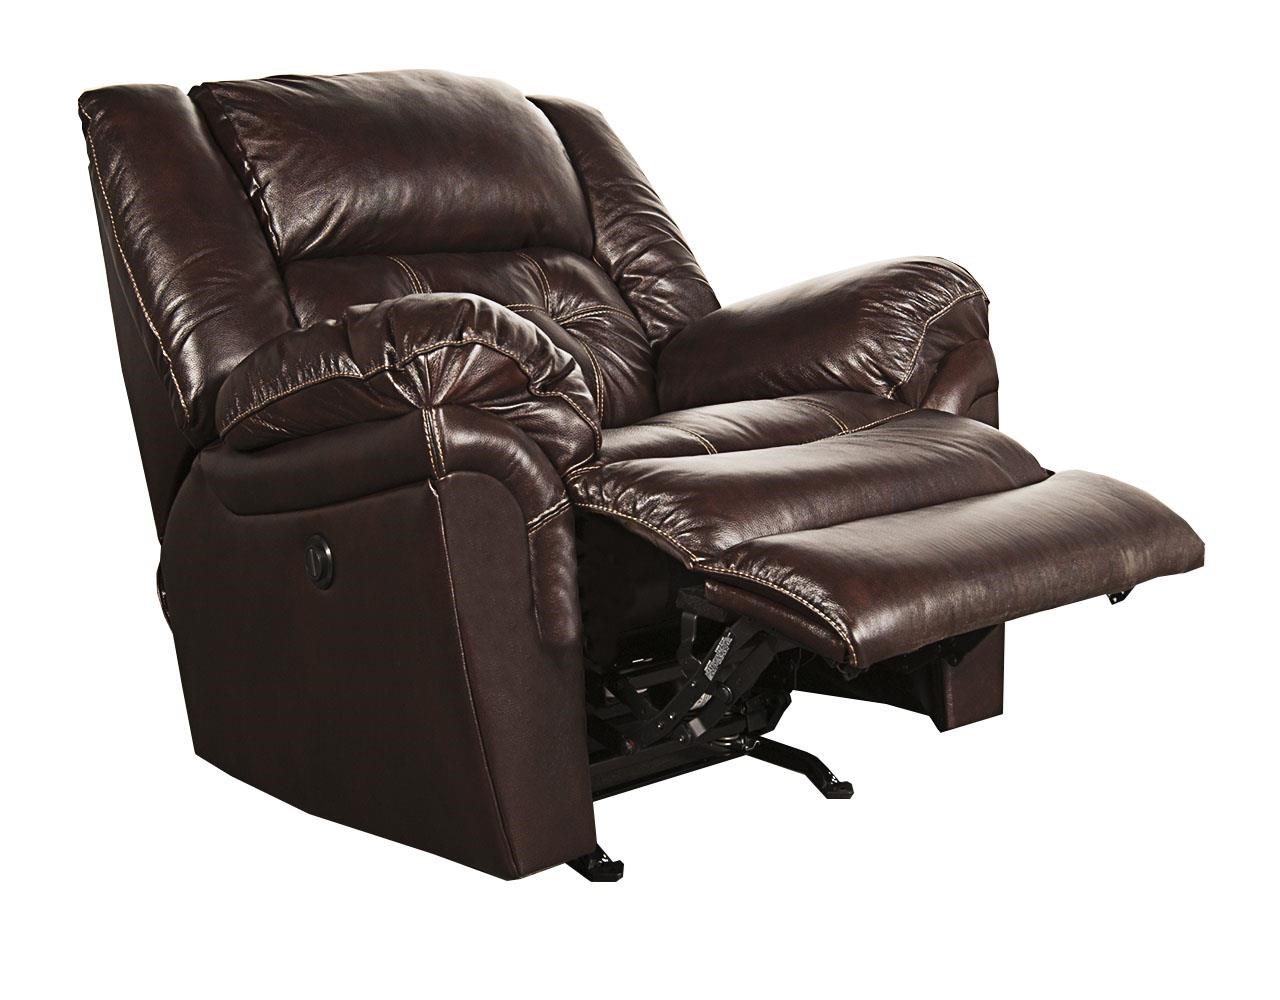 Elijah leather match power rocker recliner morris home three way recliners Morris home furniture hours